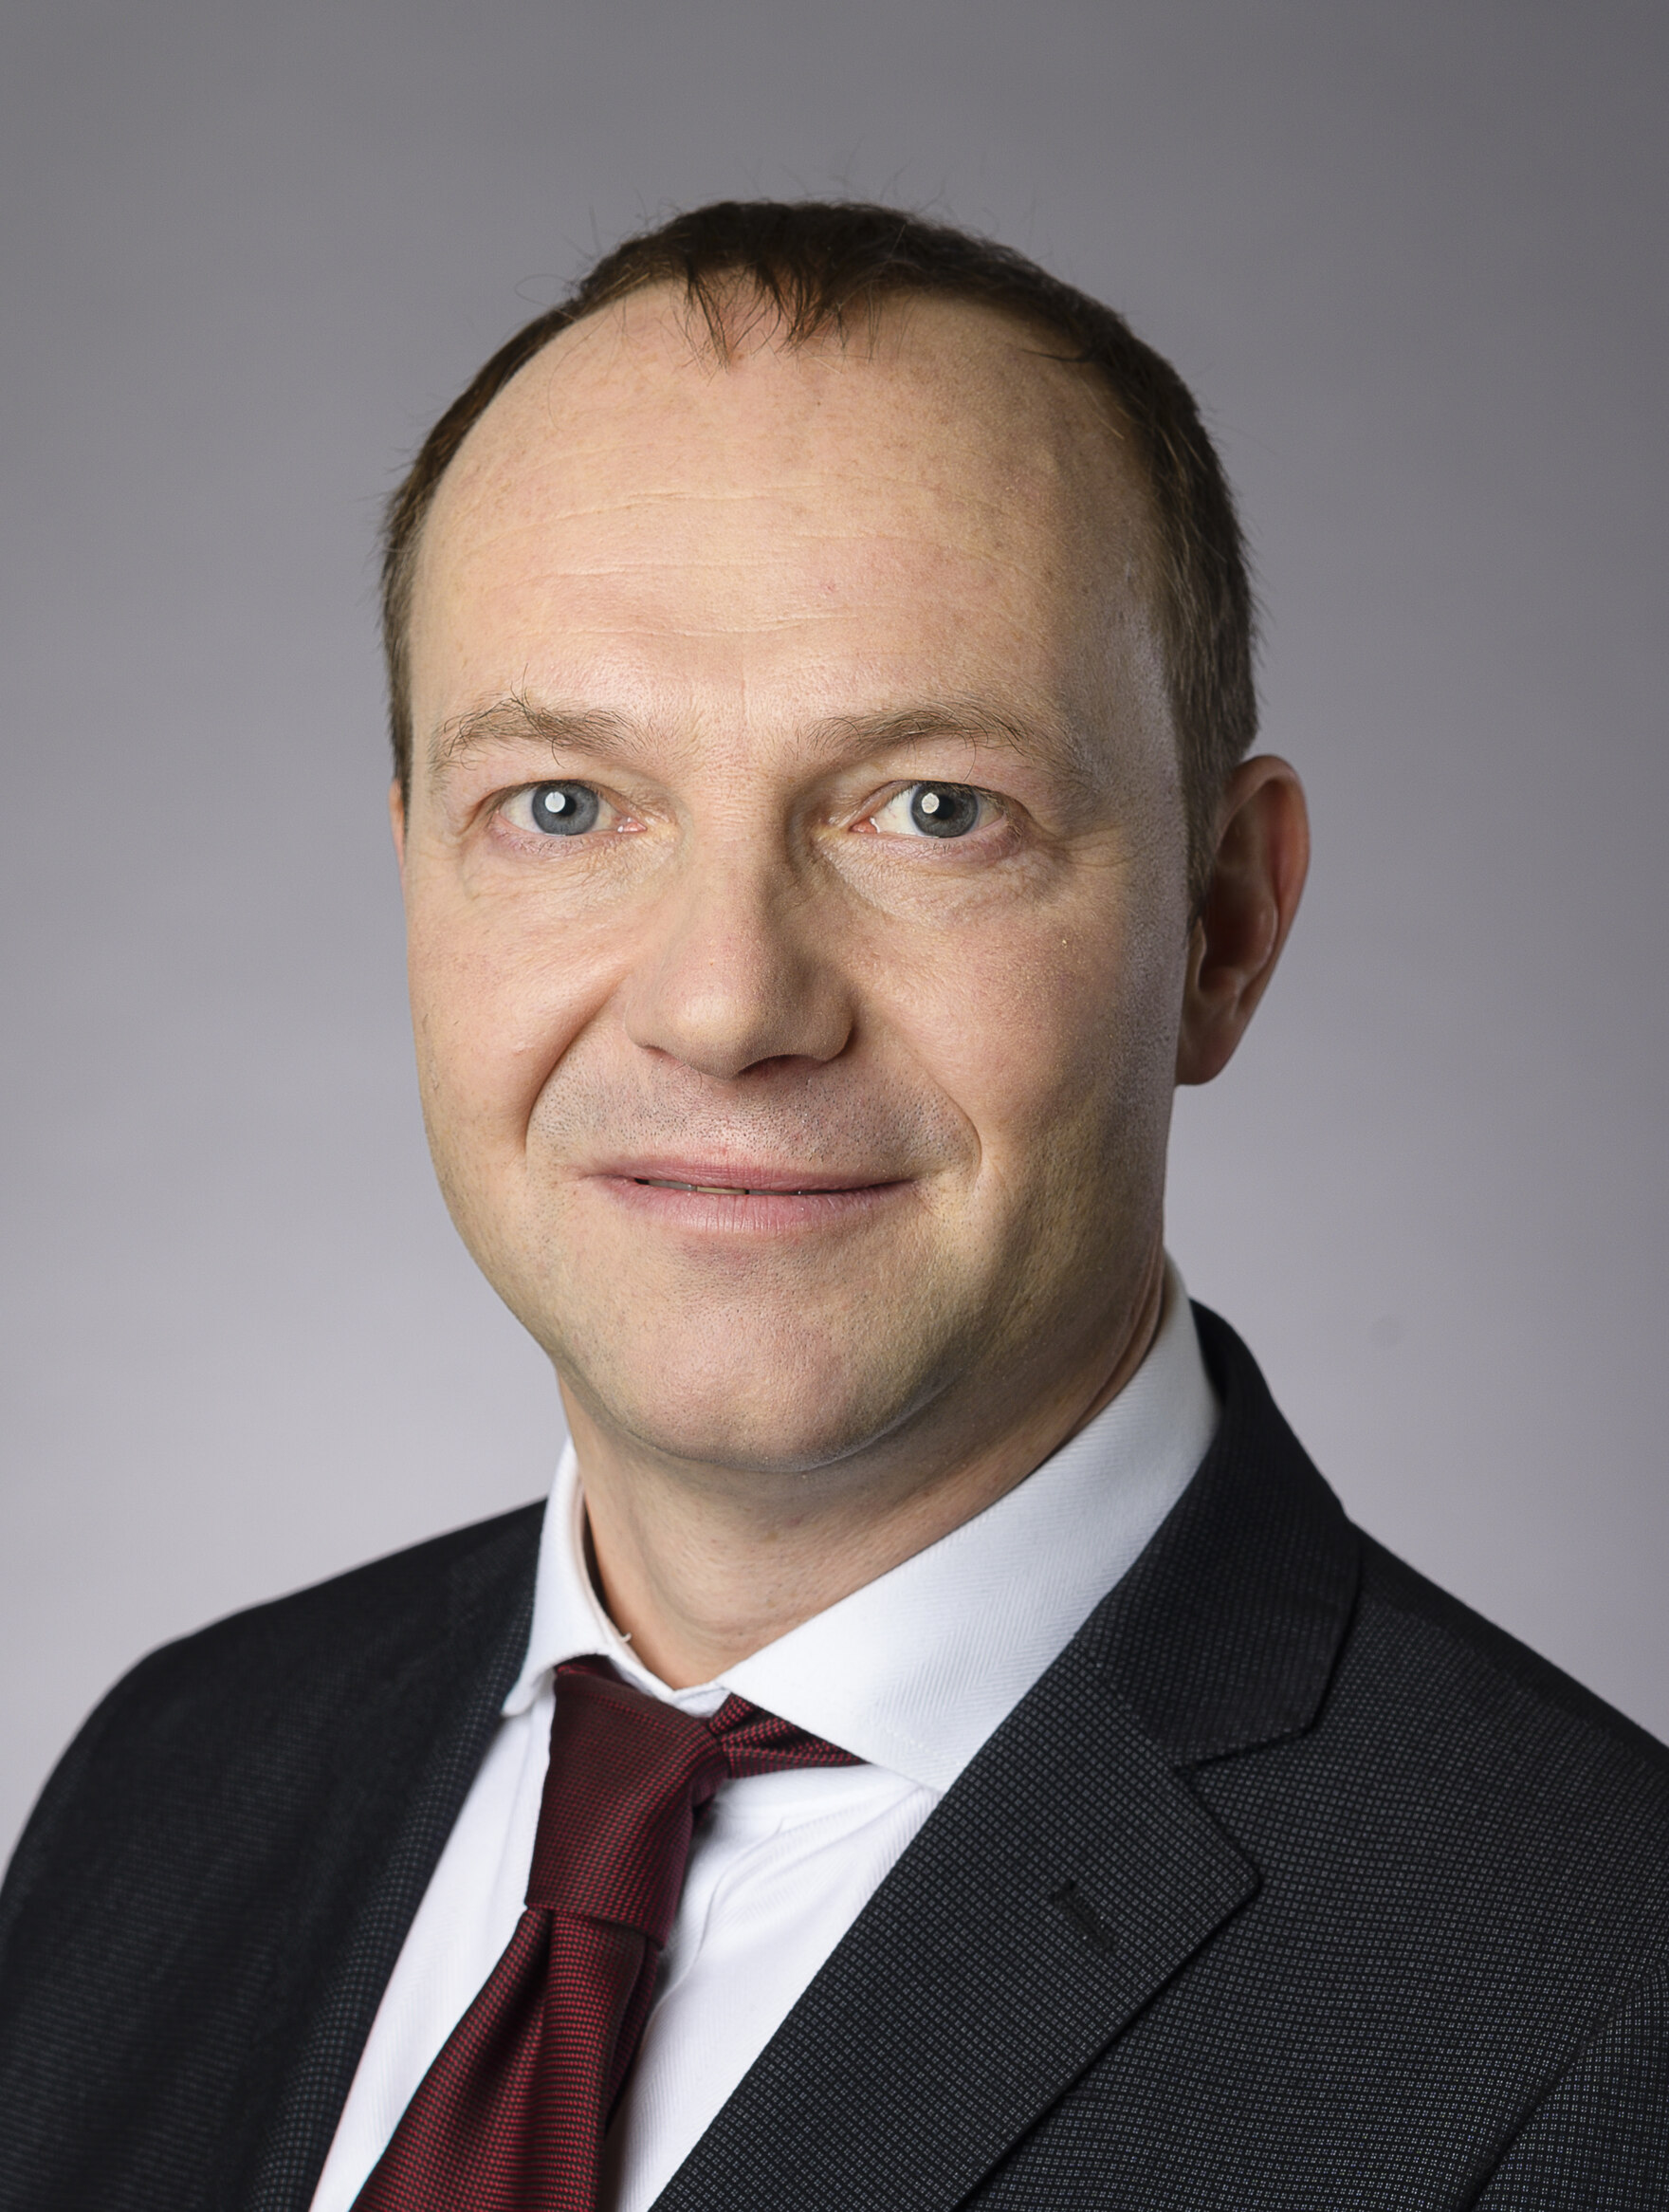 Staatsminister Wolfgang Günther